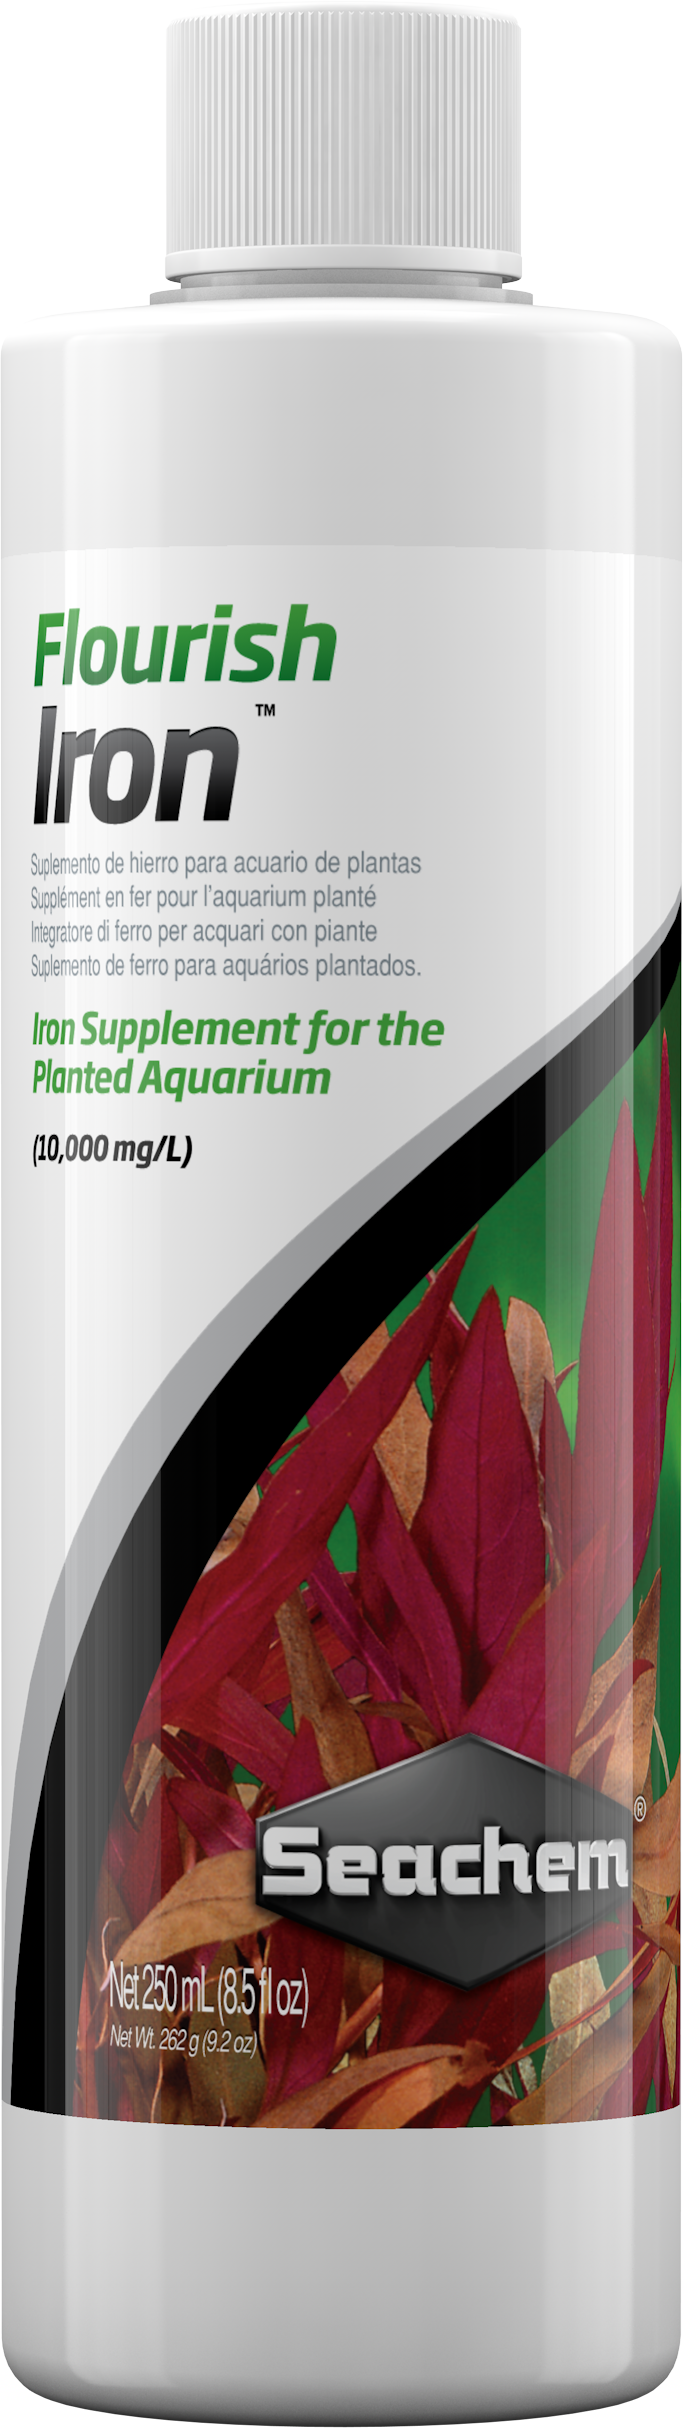 Seachem Flourish Iron for Aquarium Plants, 250-mL